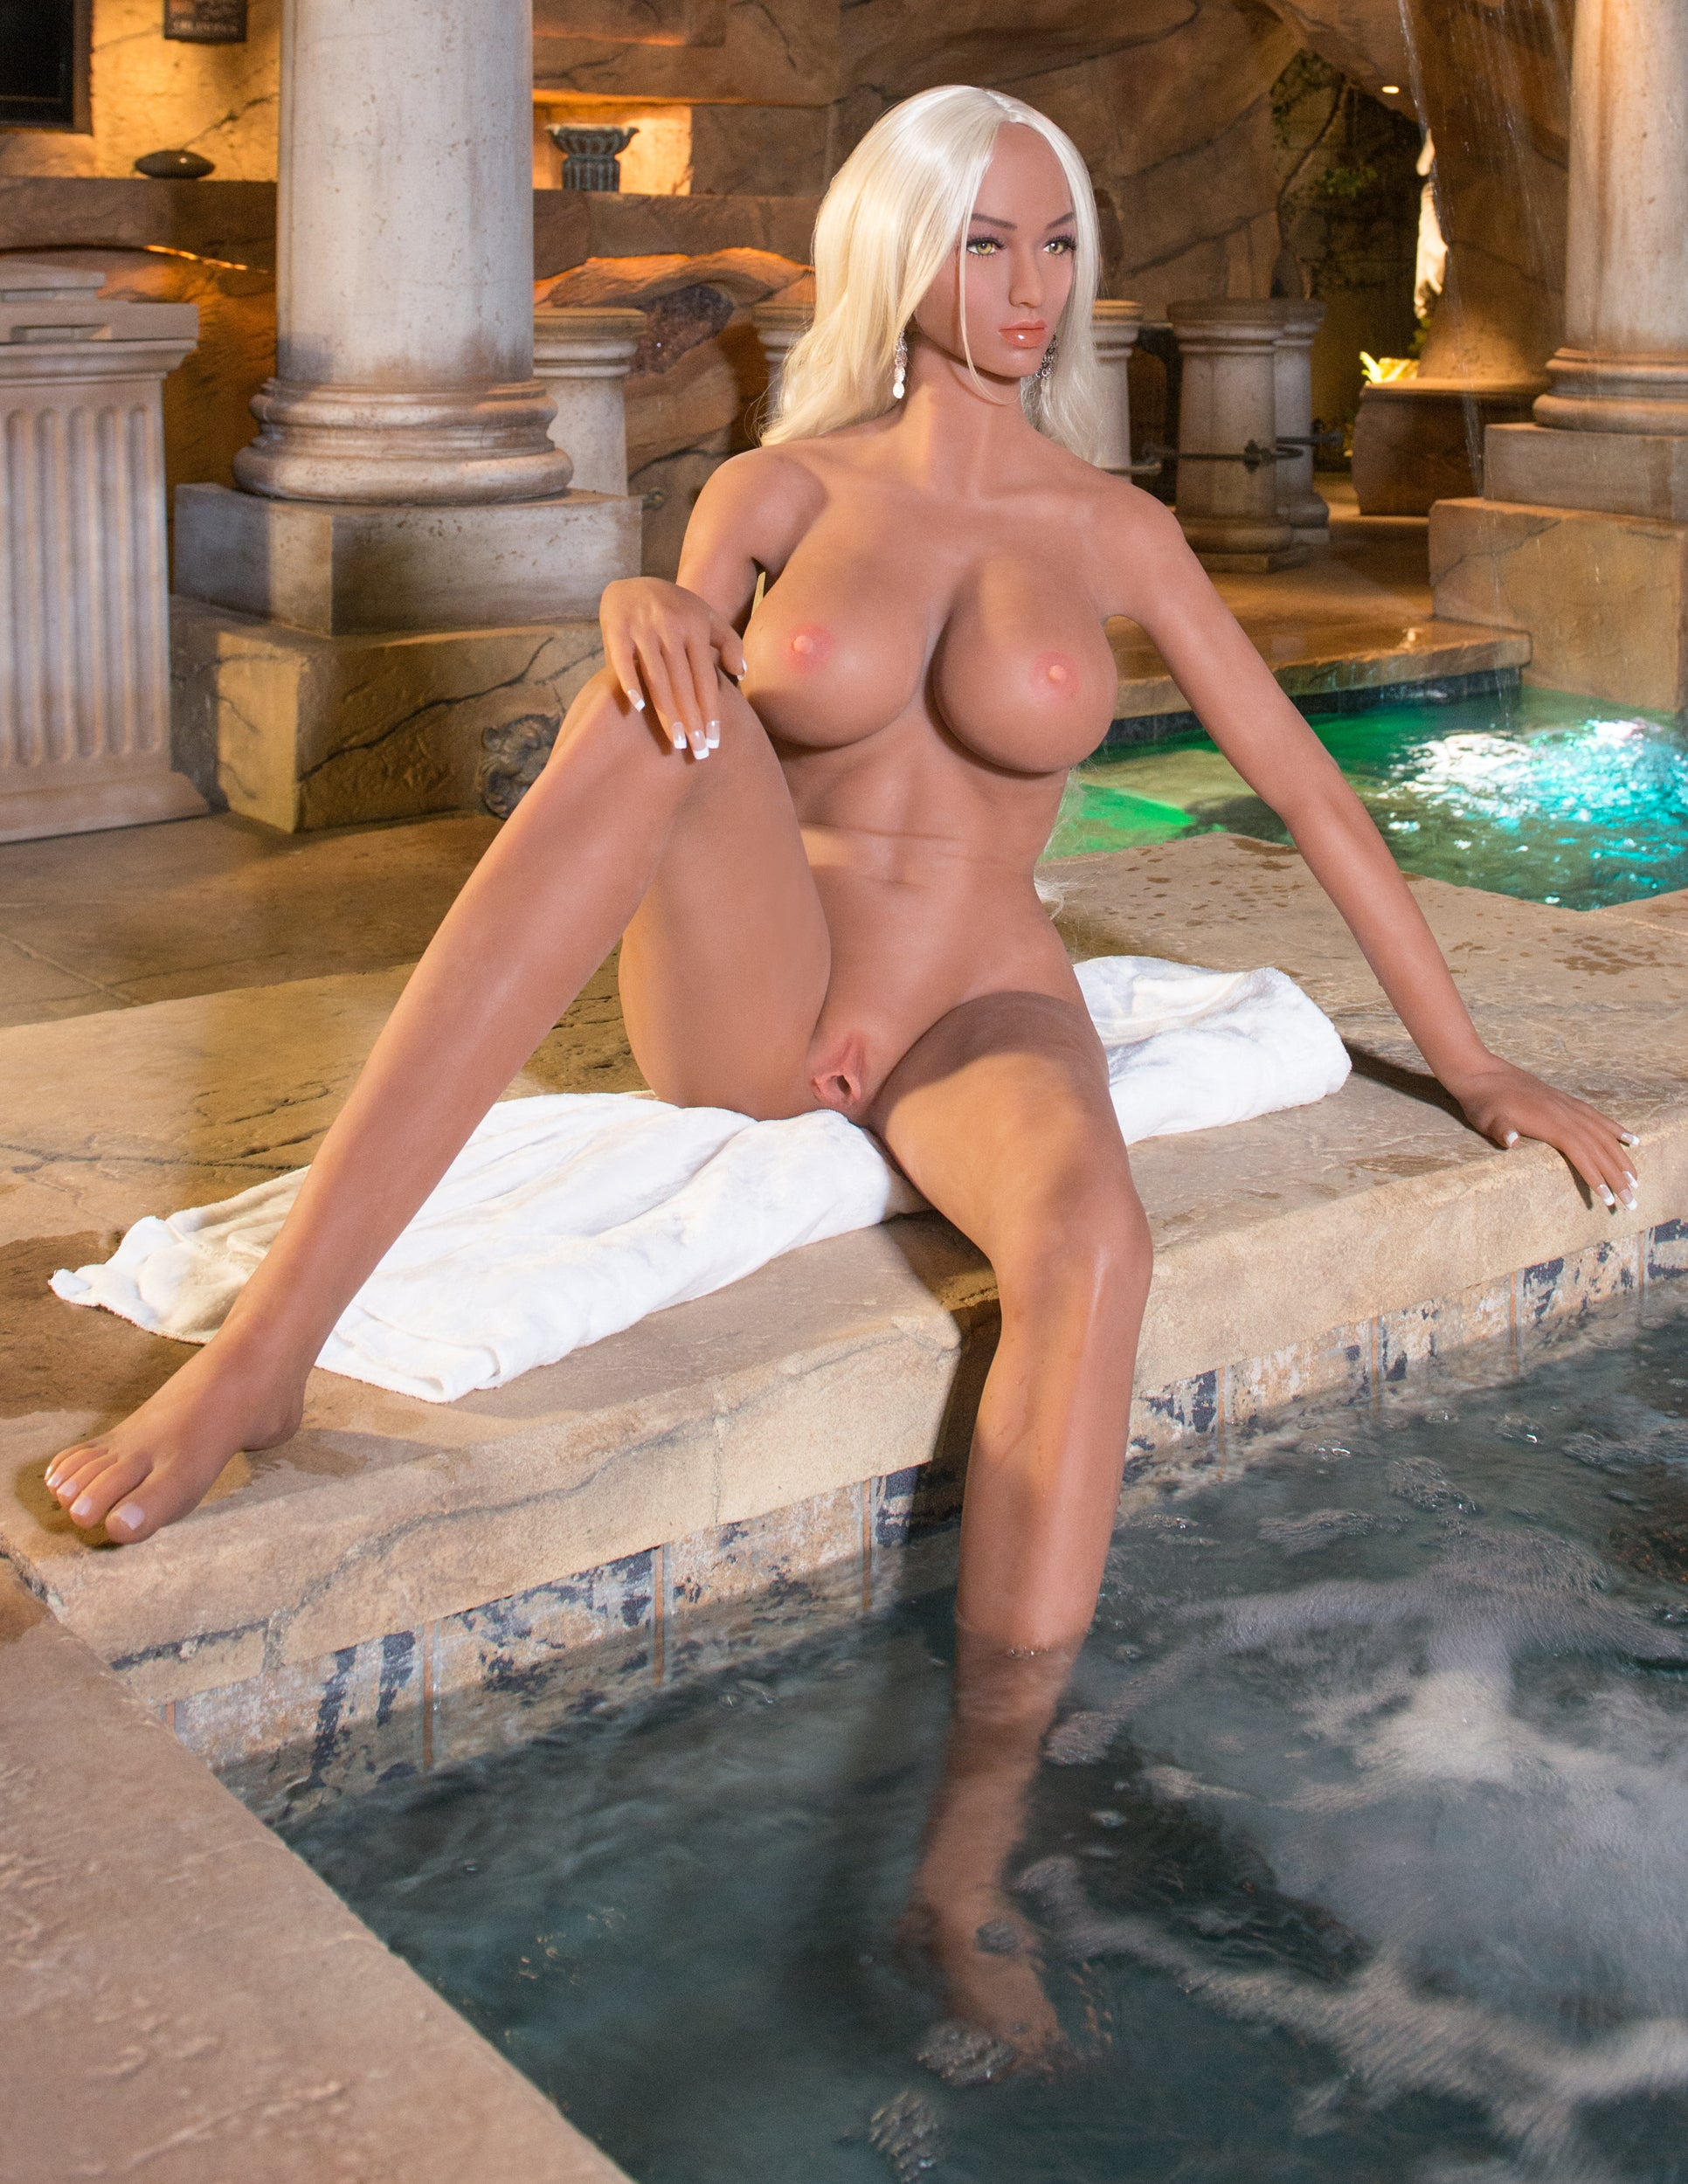 Ultimate Fantasy Dolls - Kitty completely naked, sitting pool side